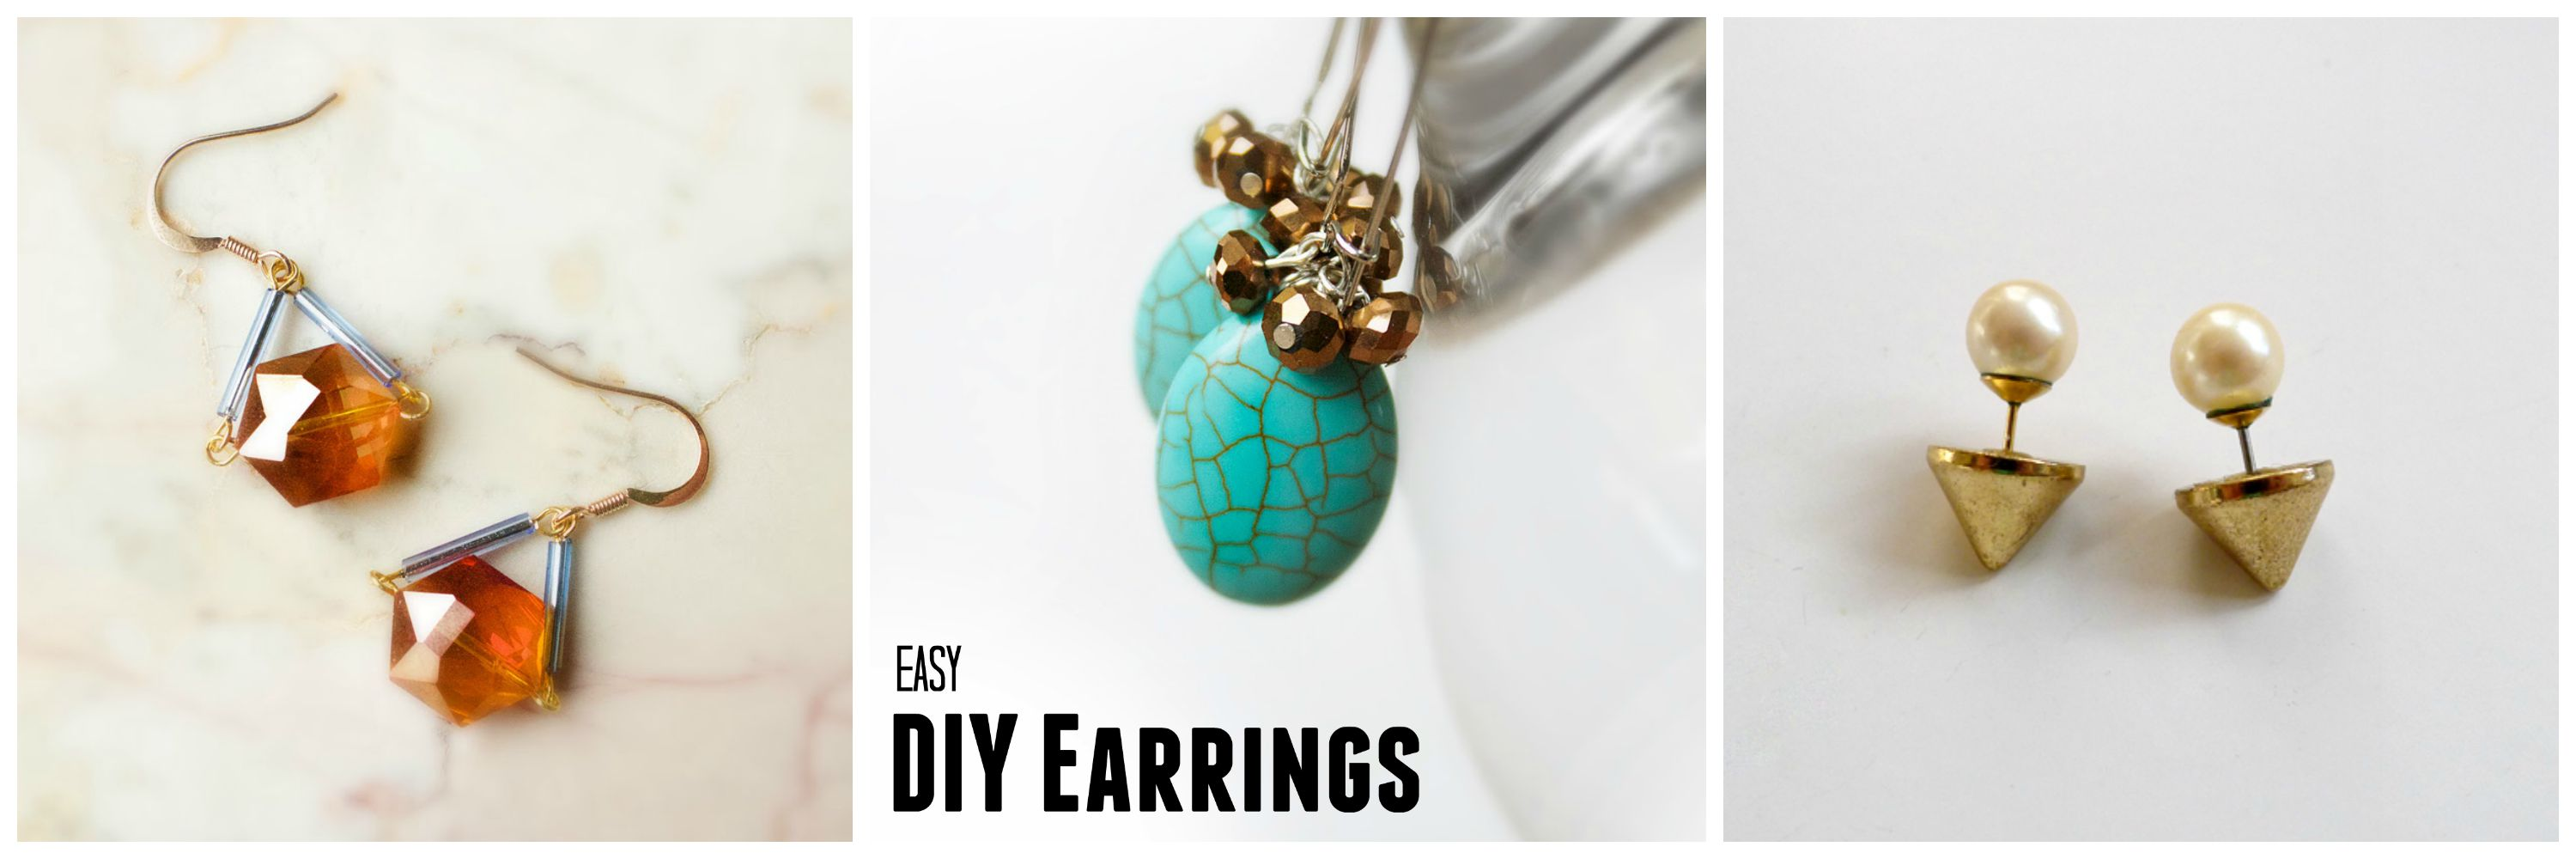 earpiece diy ideas fashionsy fancy com pearl earrings